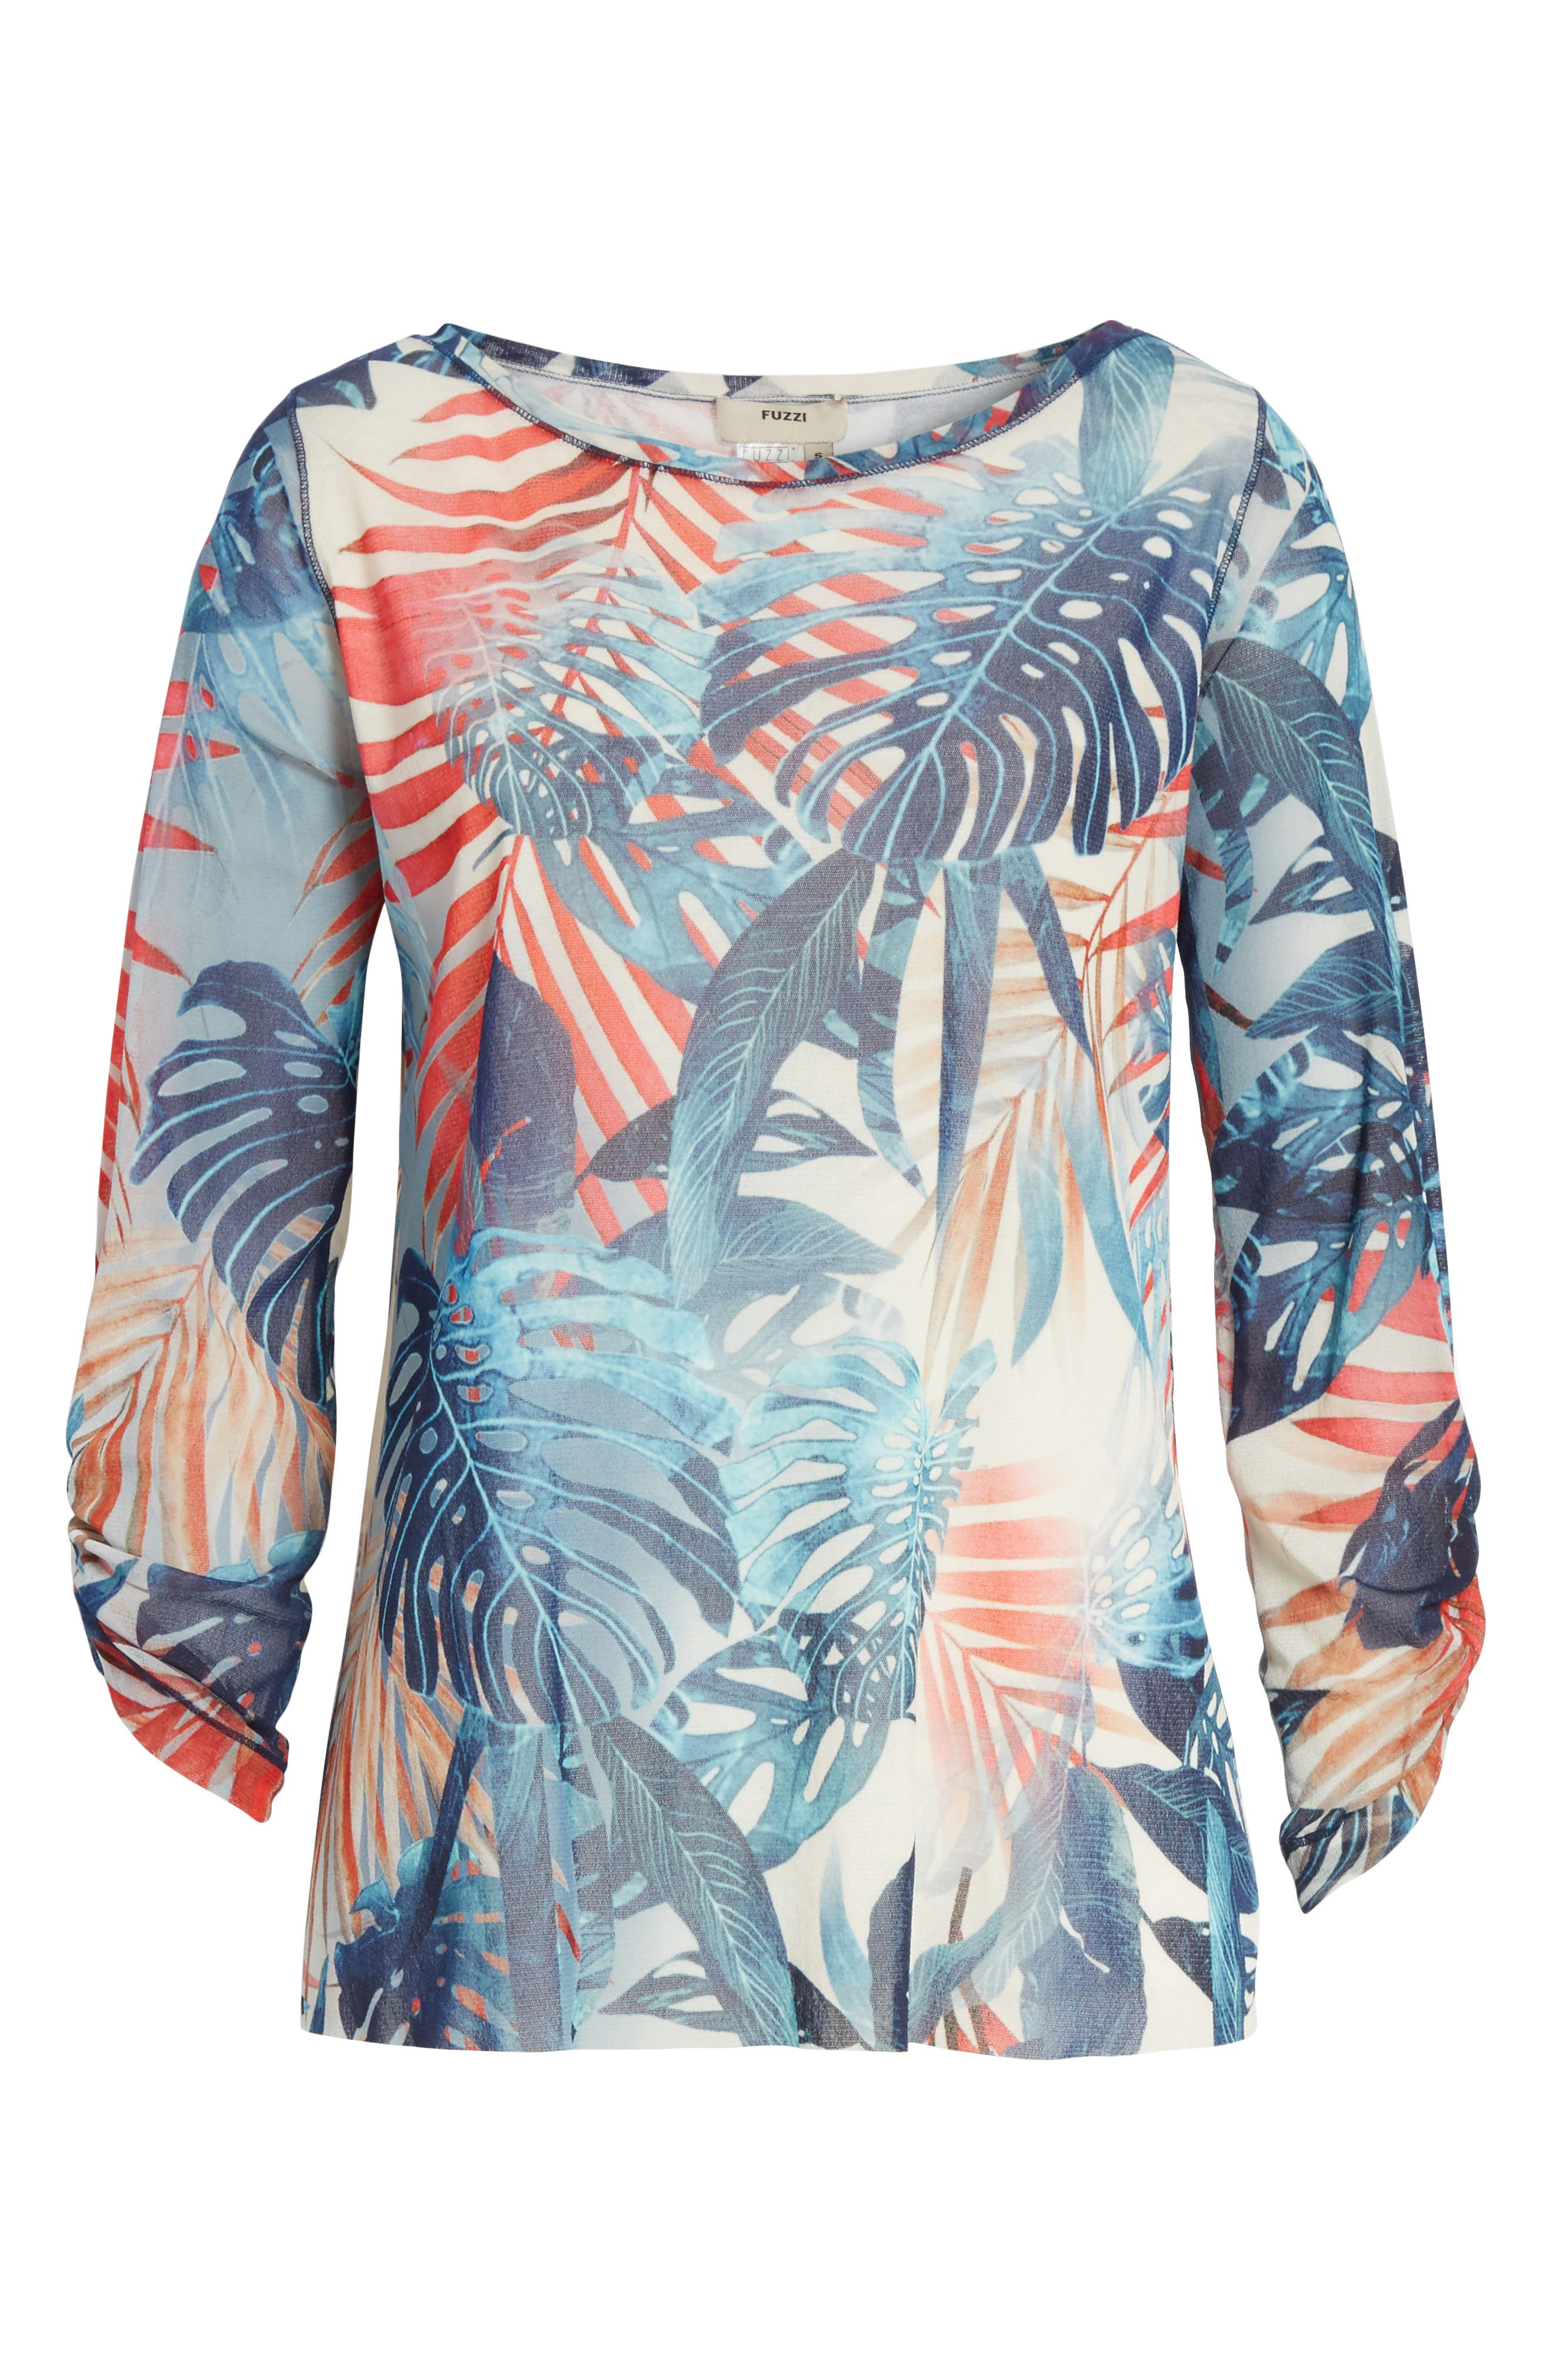 Foliage Print Long Sleeve Top,                             Alternate thumbnail 6, color,                             Zaffiro